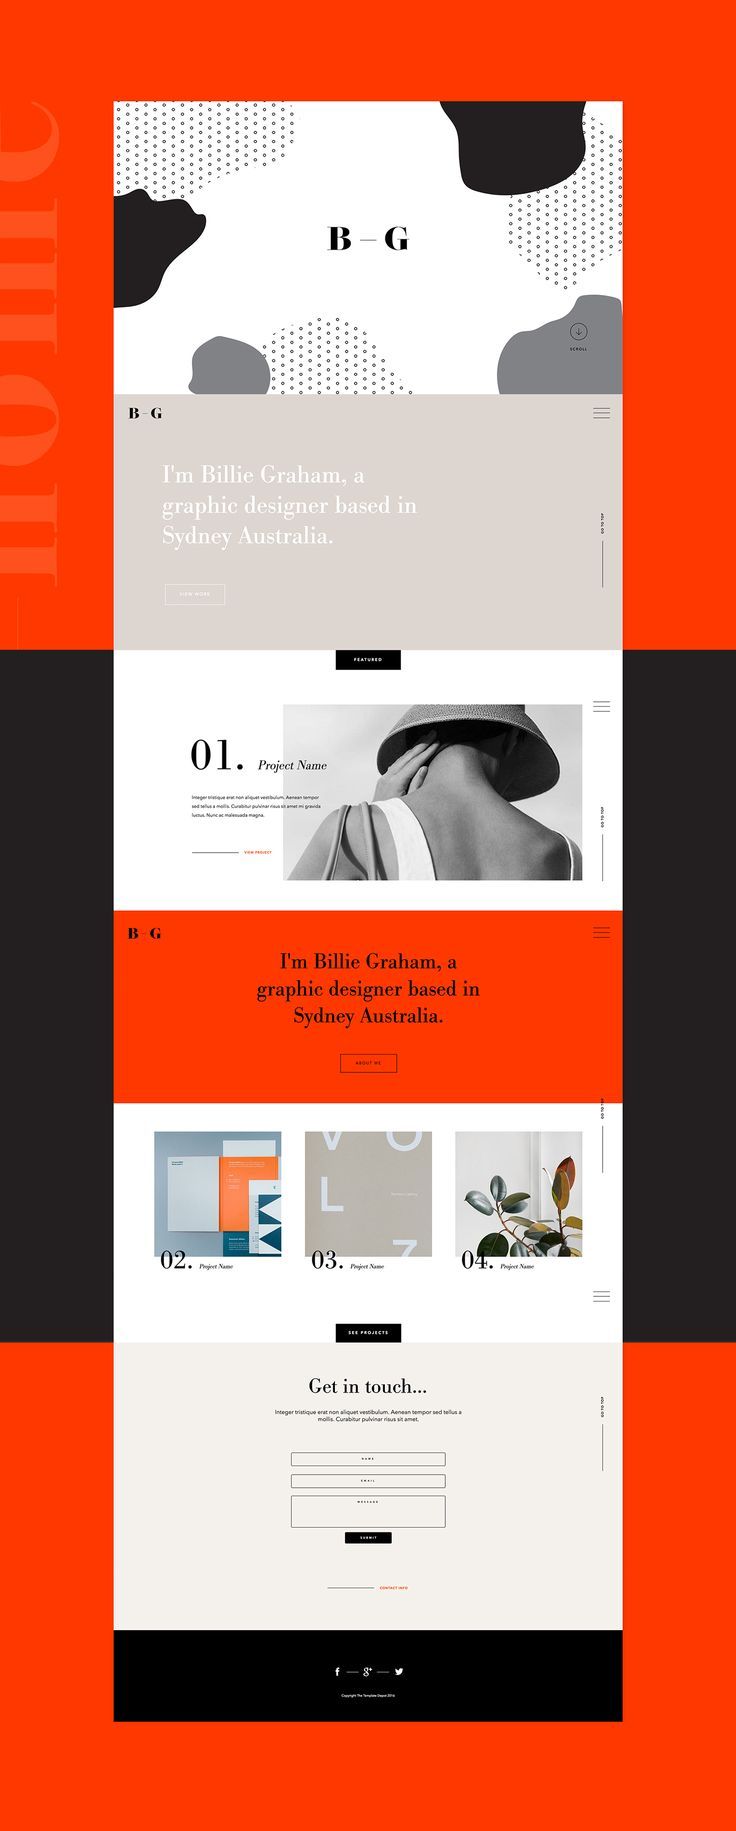 Folio.2 Is Part Of An Adobe Muse Template Series Based On Creativeu0027s  Portfolios